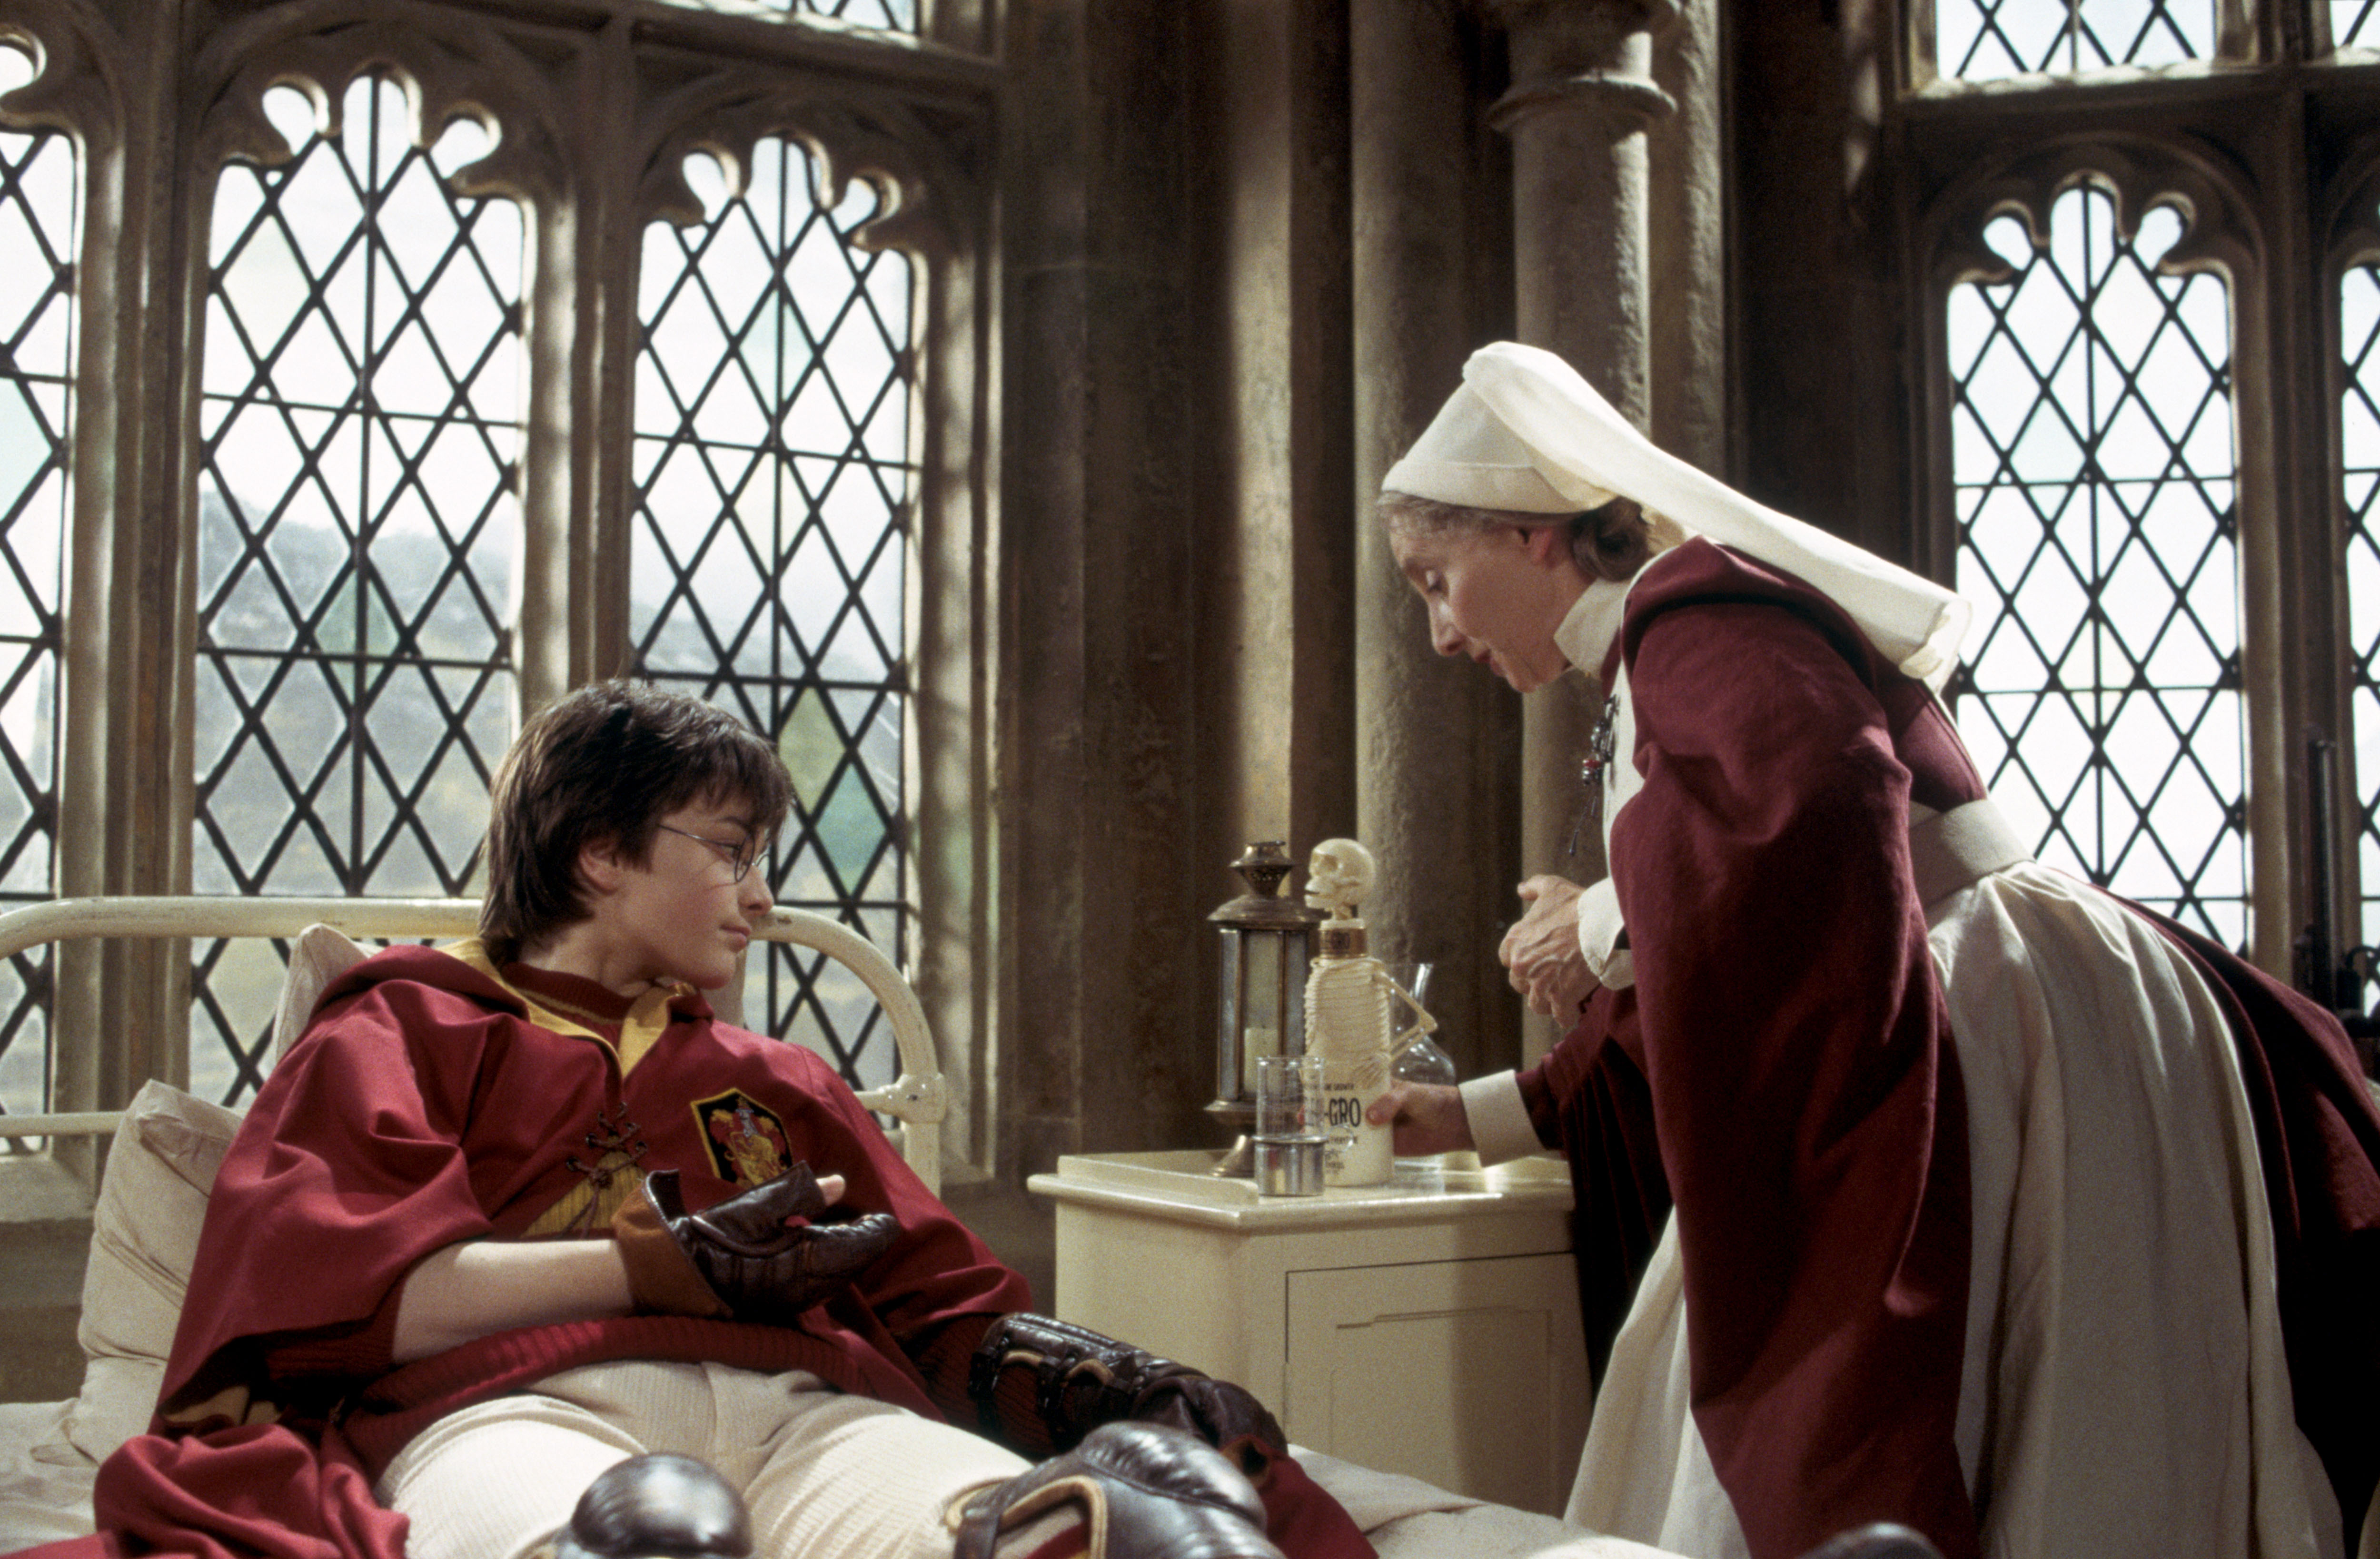 Madam Pomfrey tends to Harry with Skele-Gro after Lockhart removes all the bones in Harry's arm